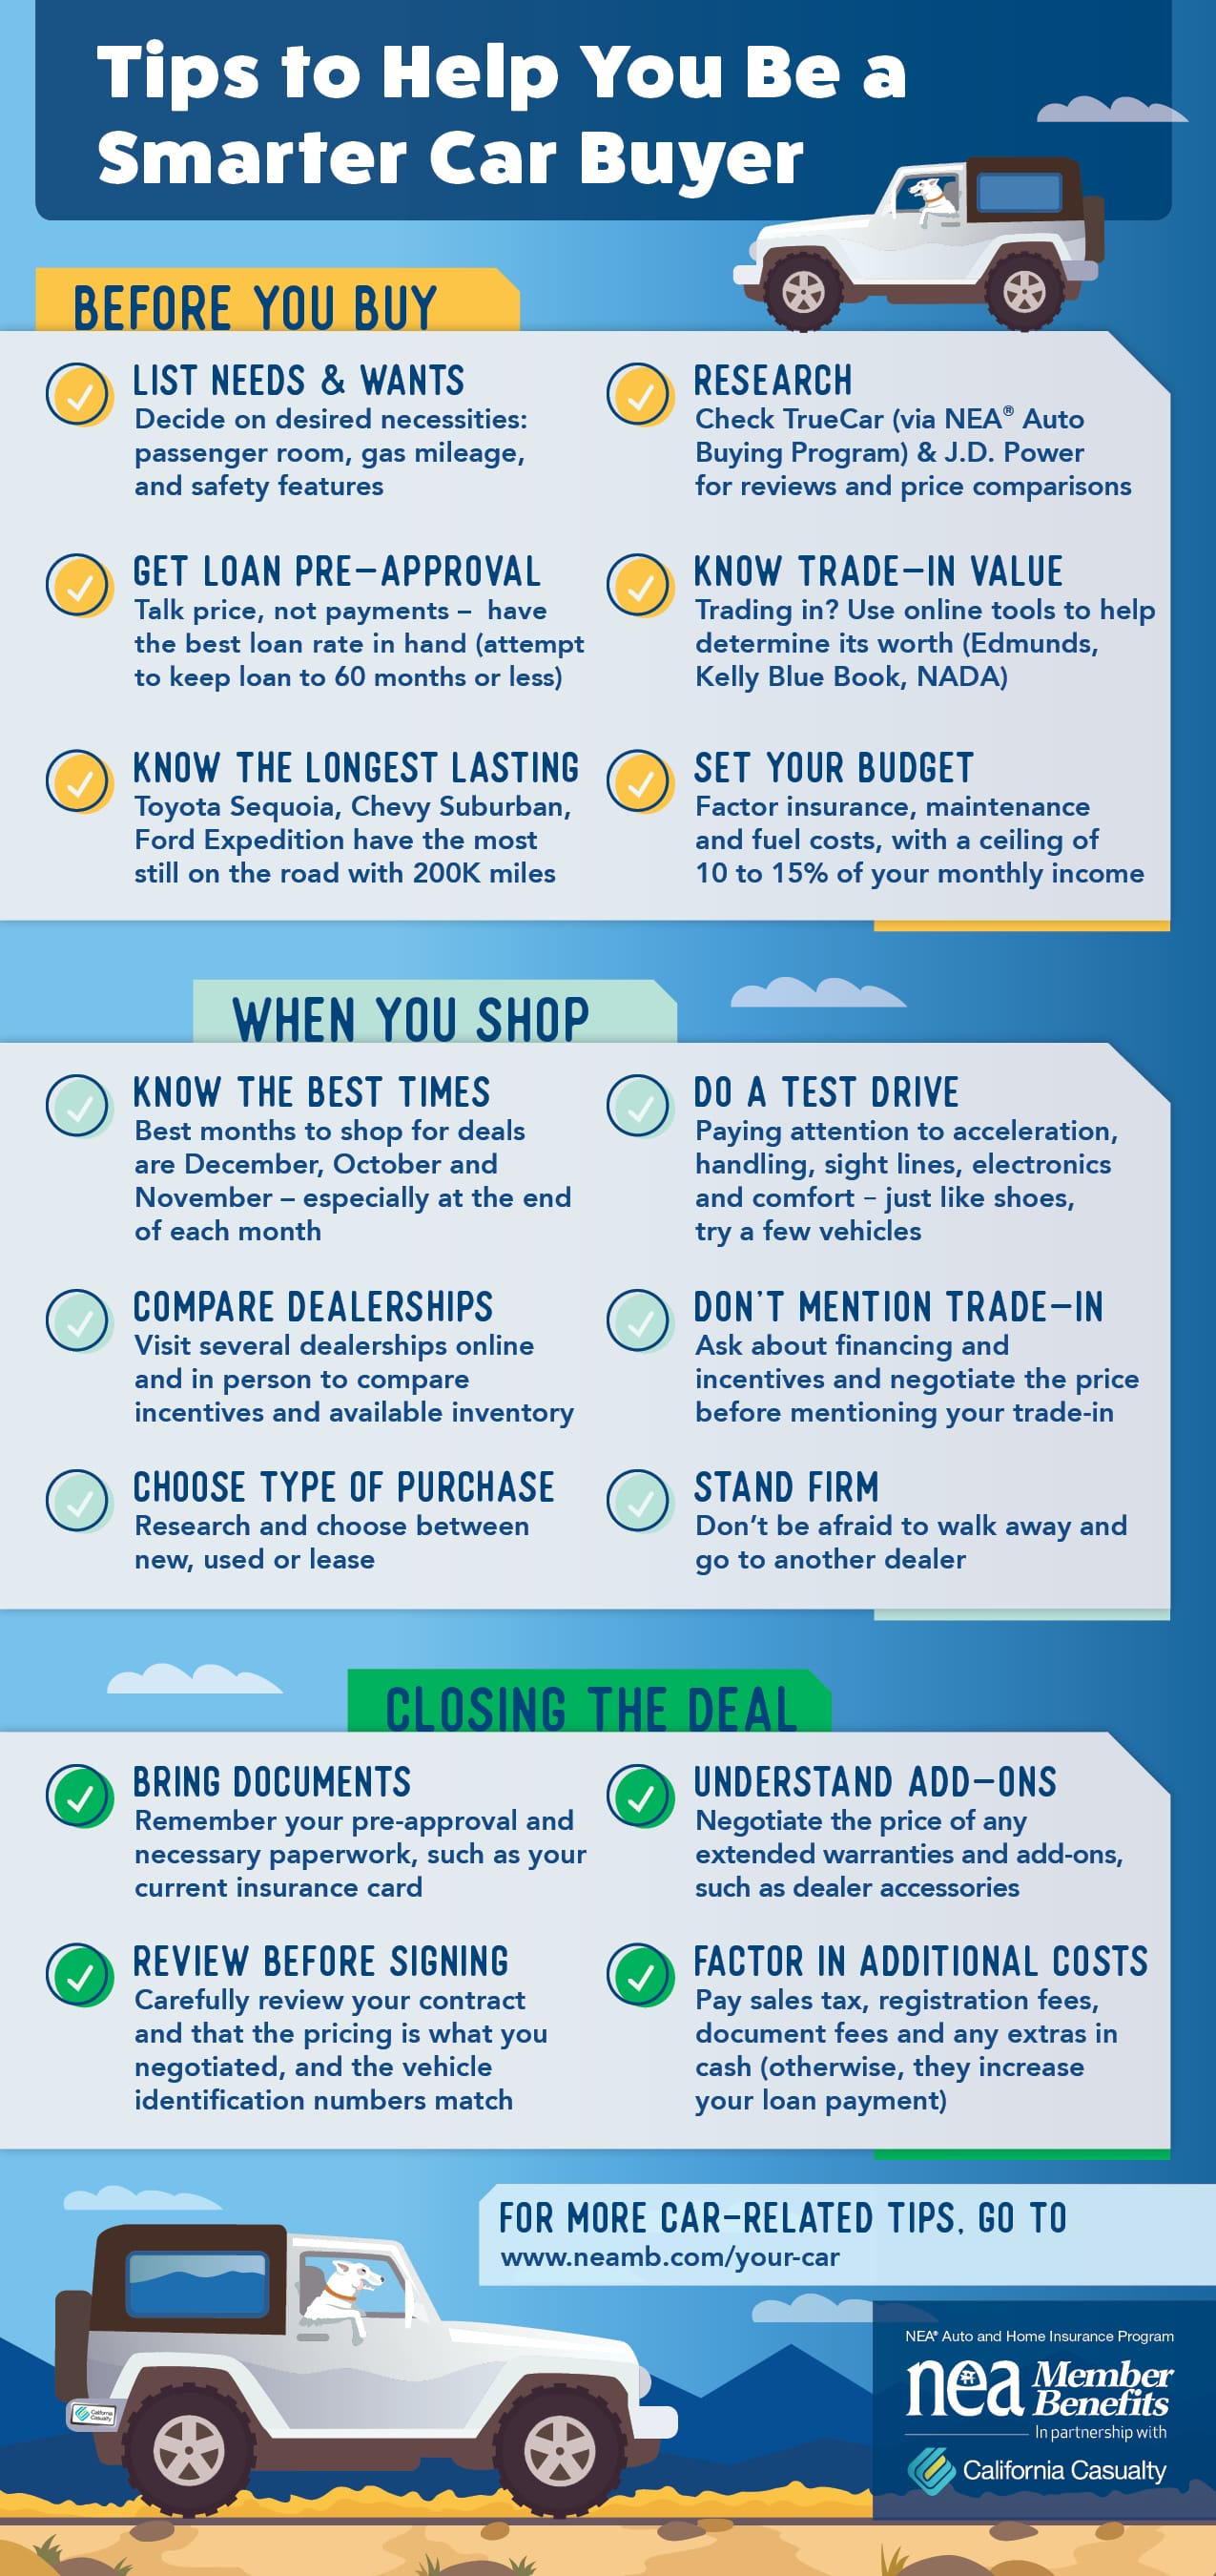 Tips to Help Your Be a Smarter Car Buyer Checklist